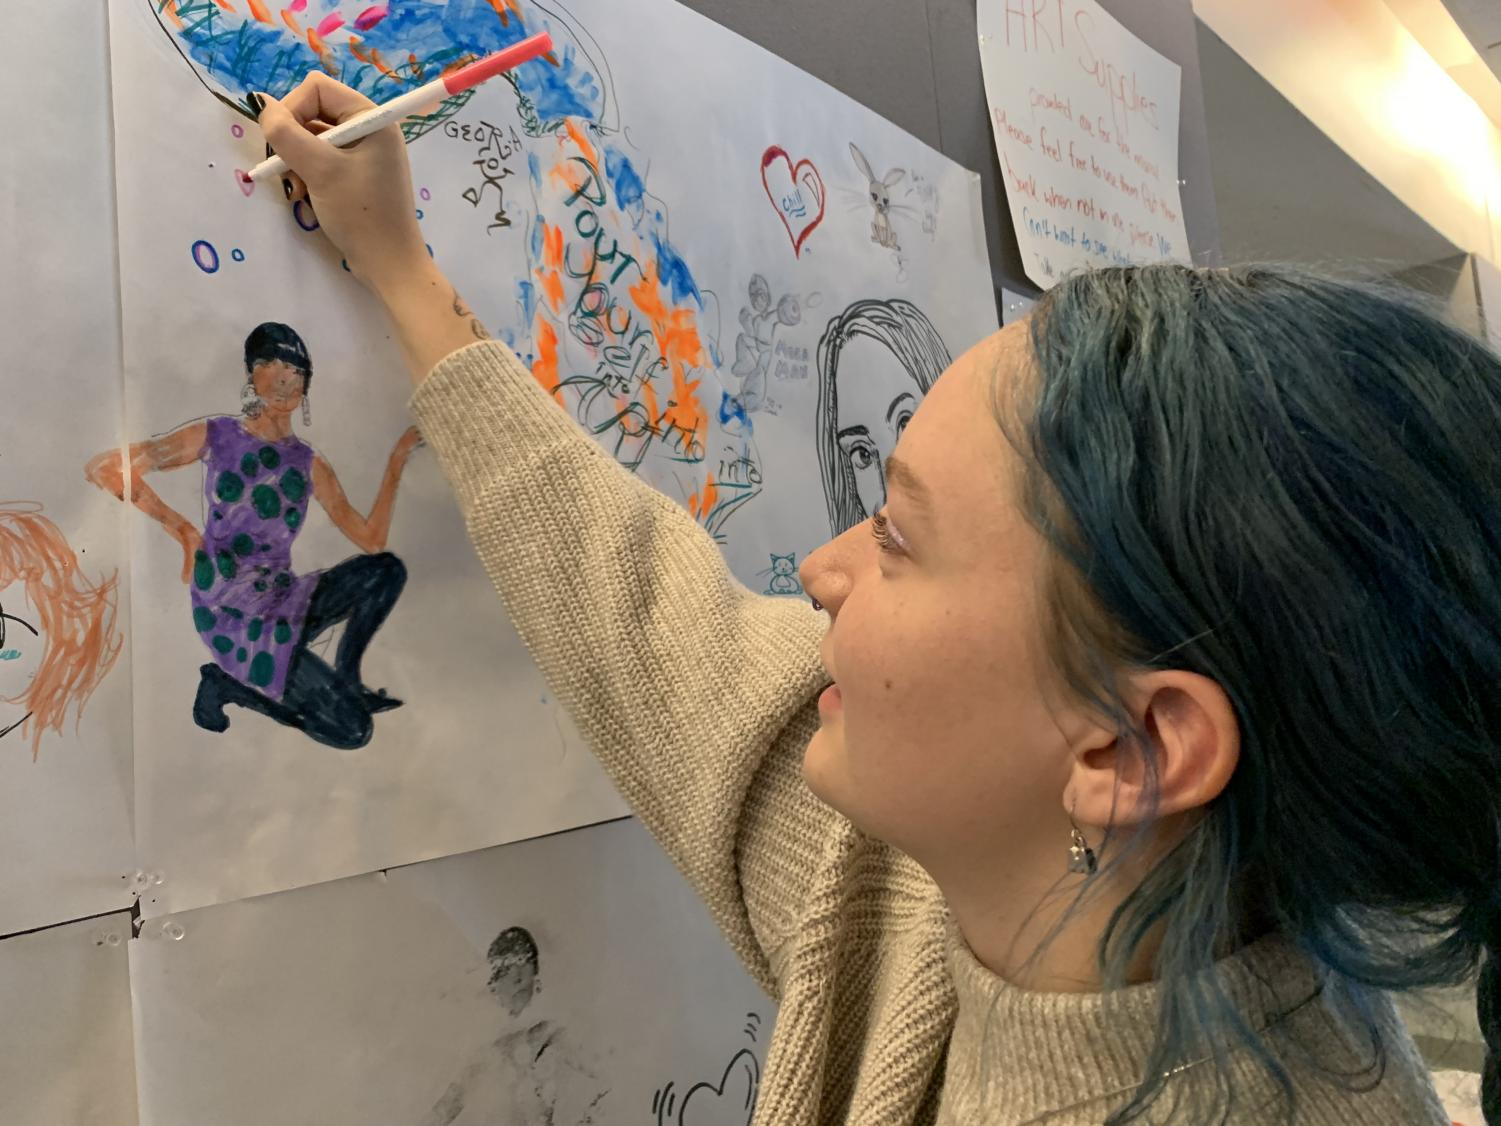 Psychology student Madison Likens is among many artists pursuing degrees in subjects other than art that they believe will land them more stable jobs.